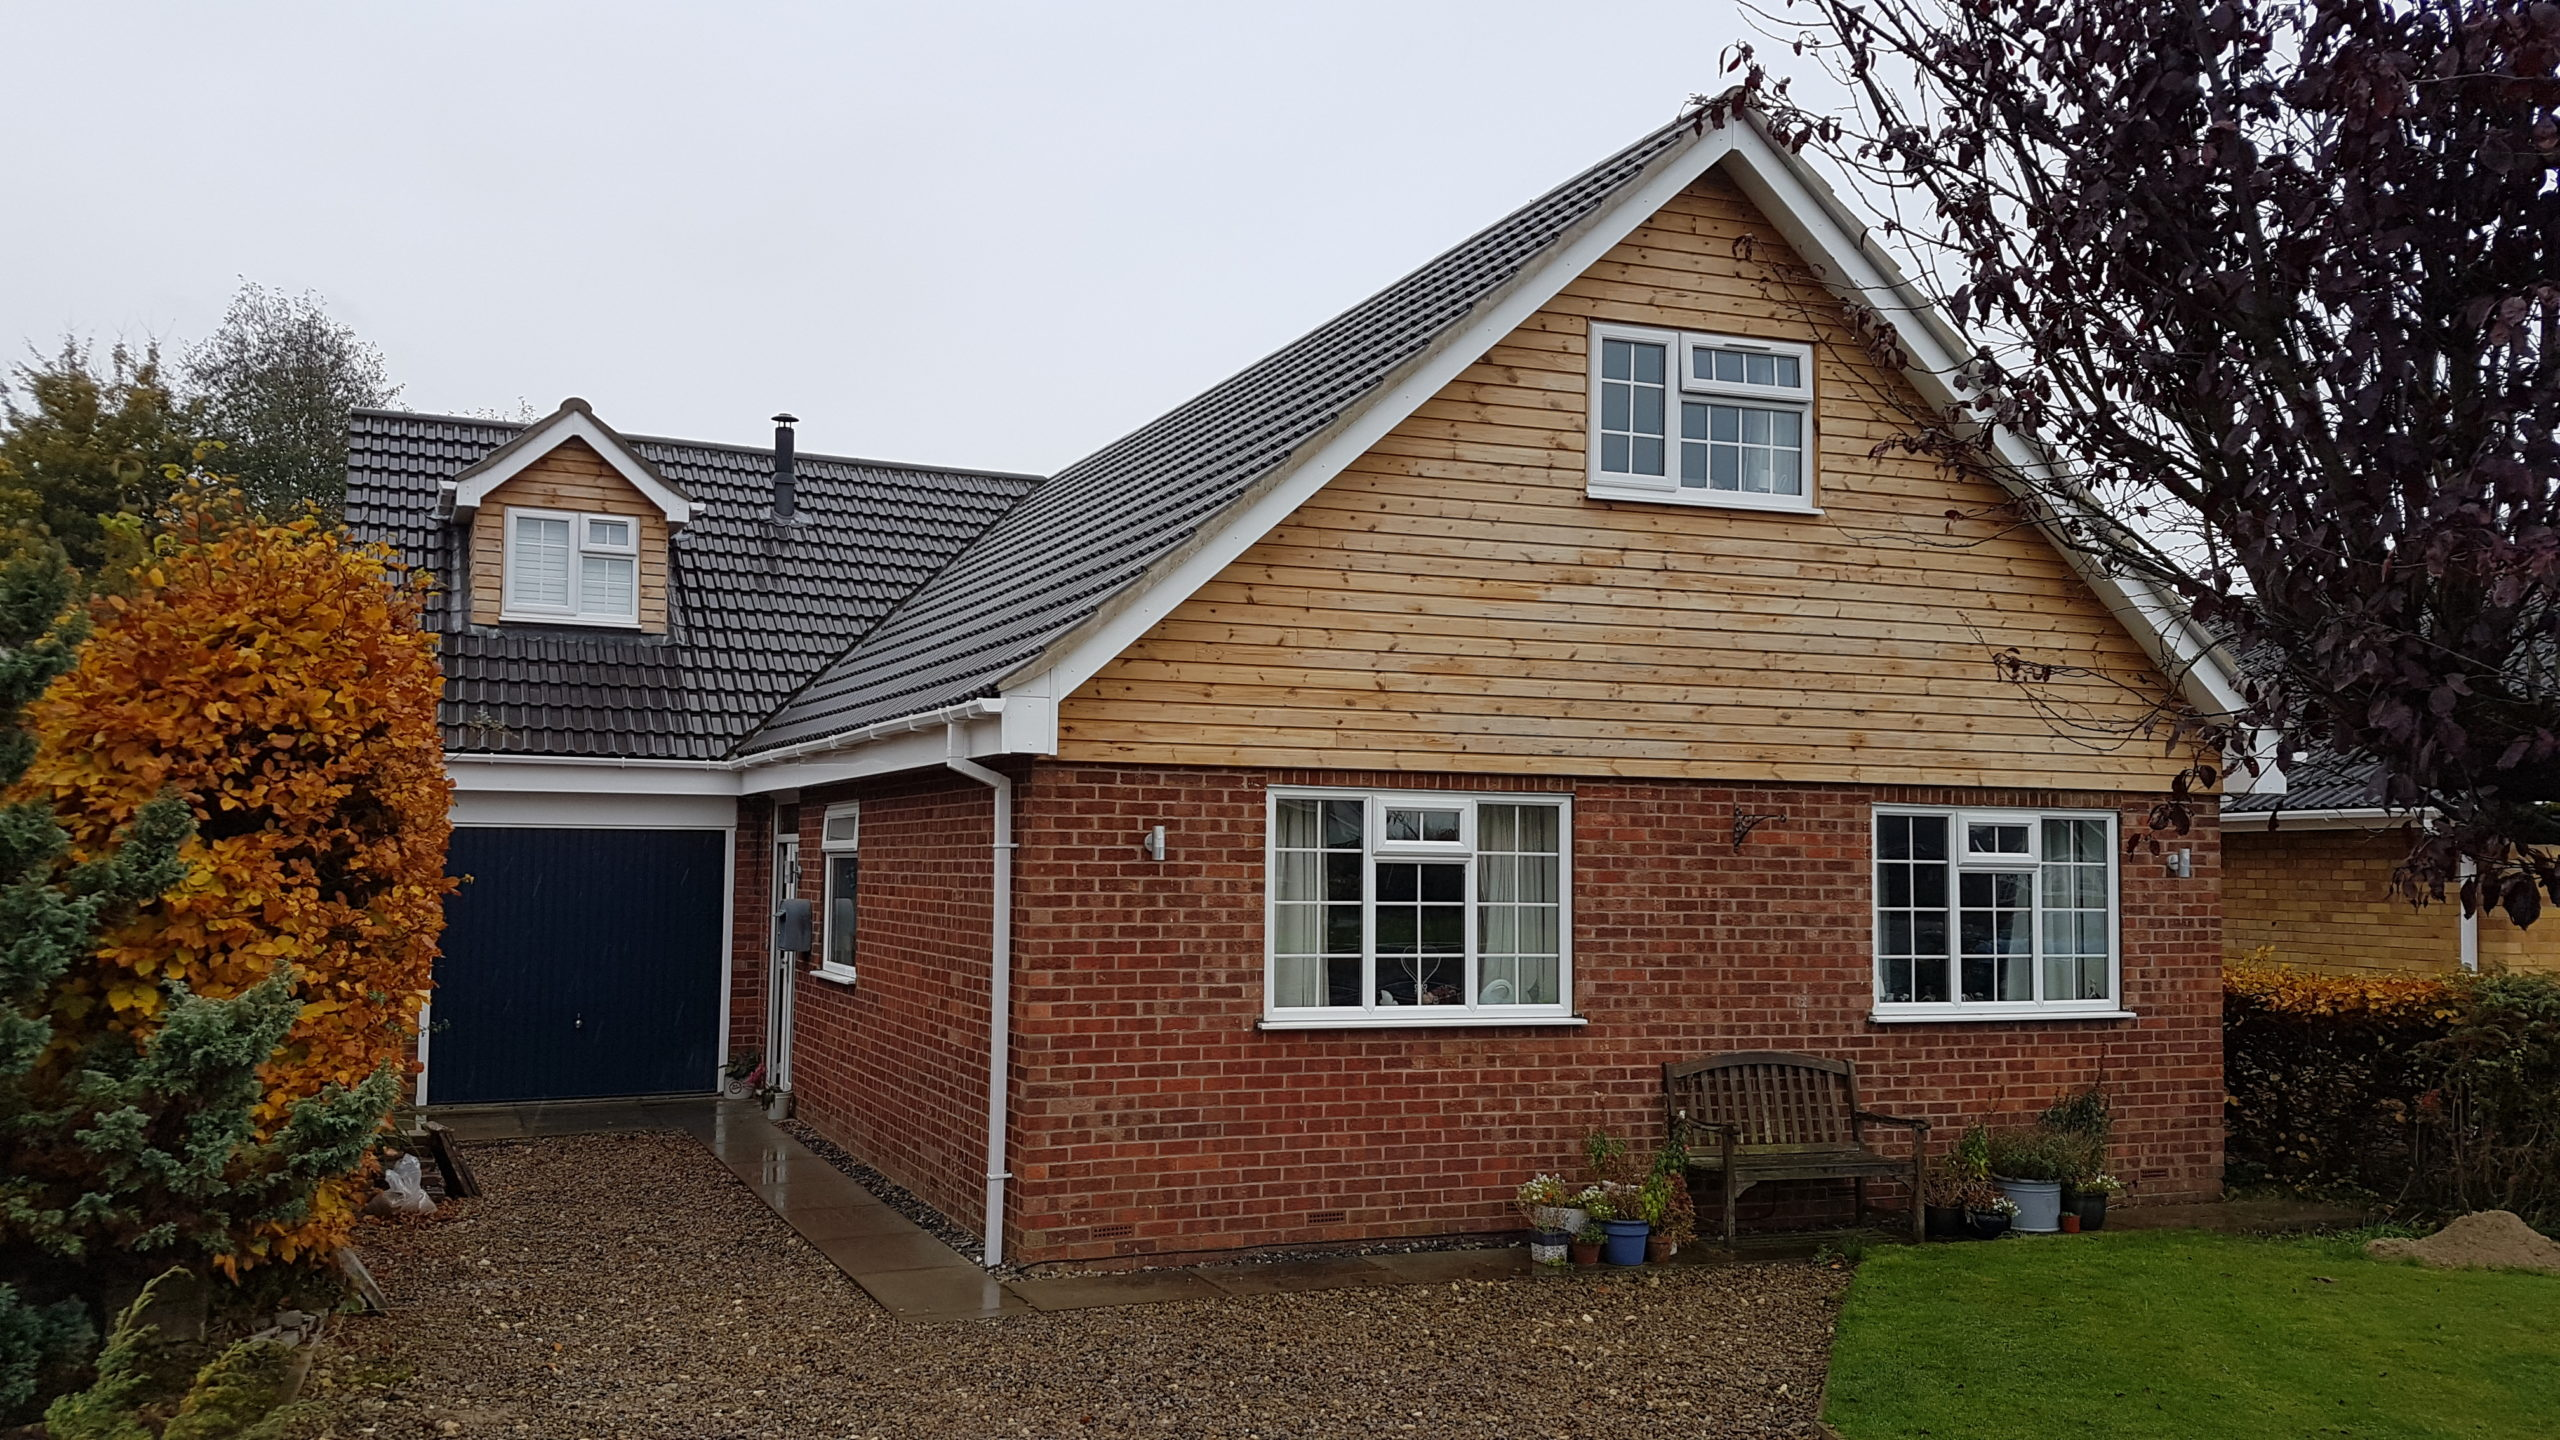 driveway view of bungalow with roof lift